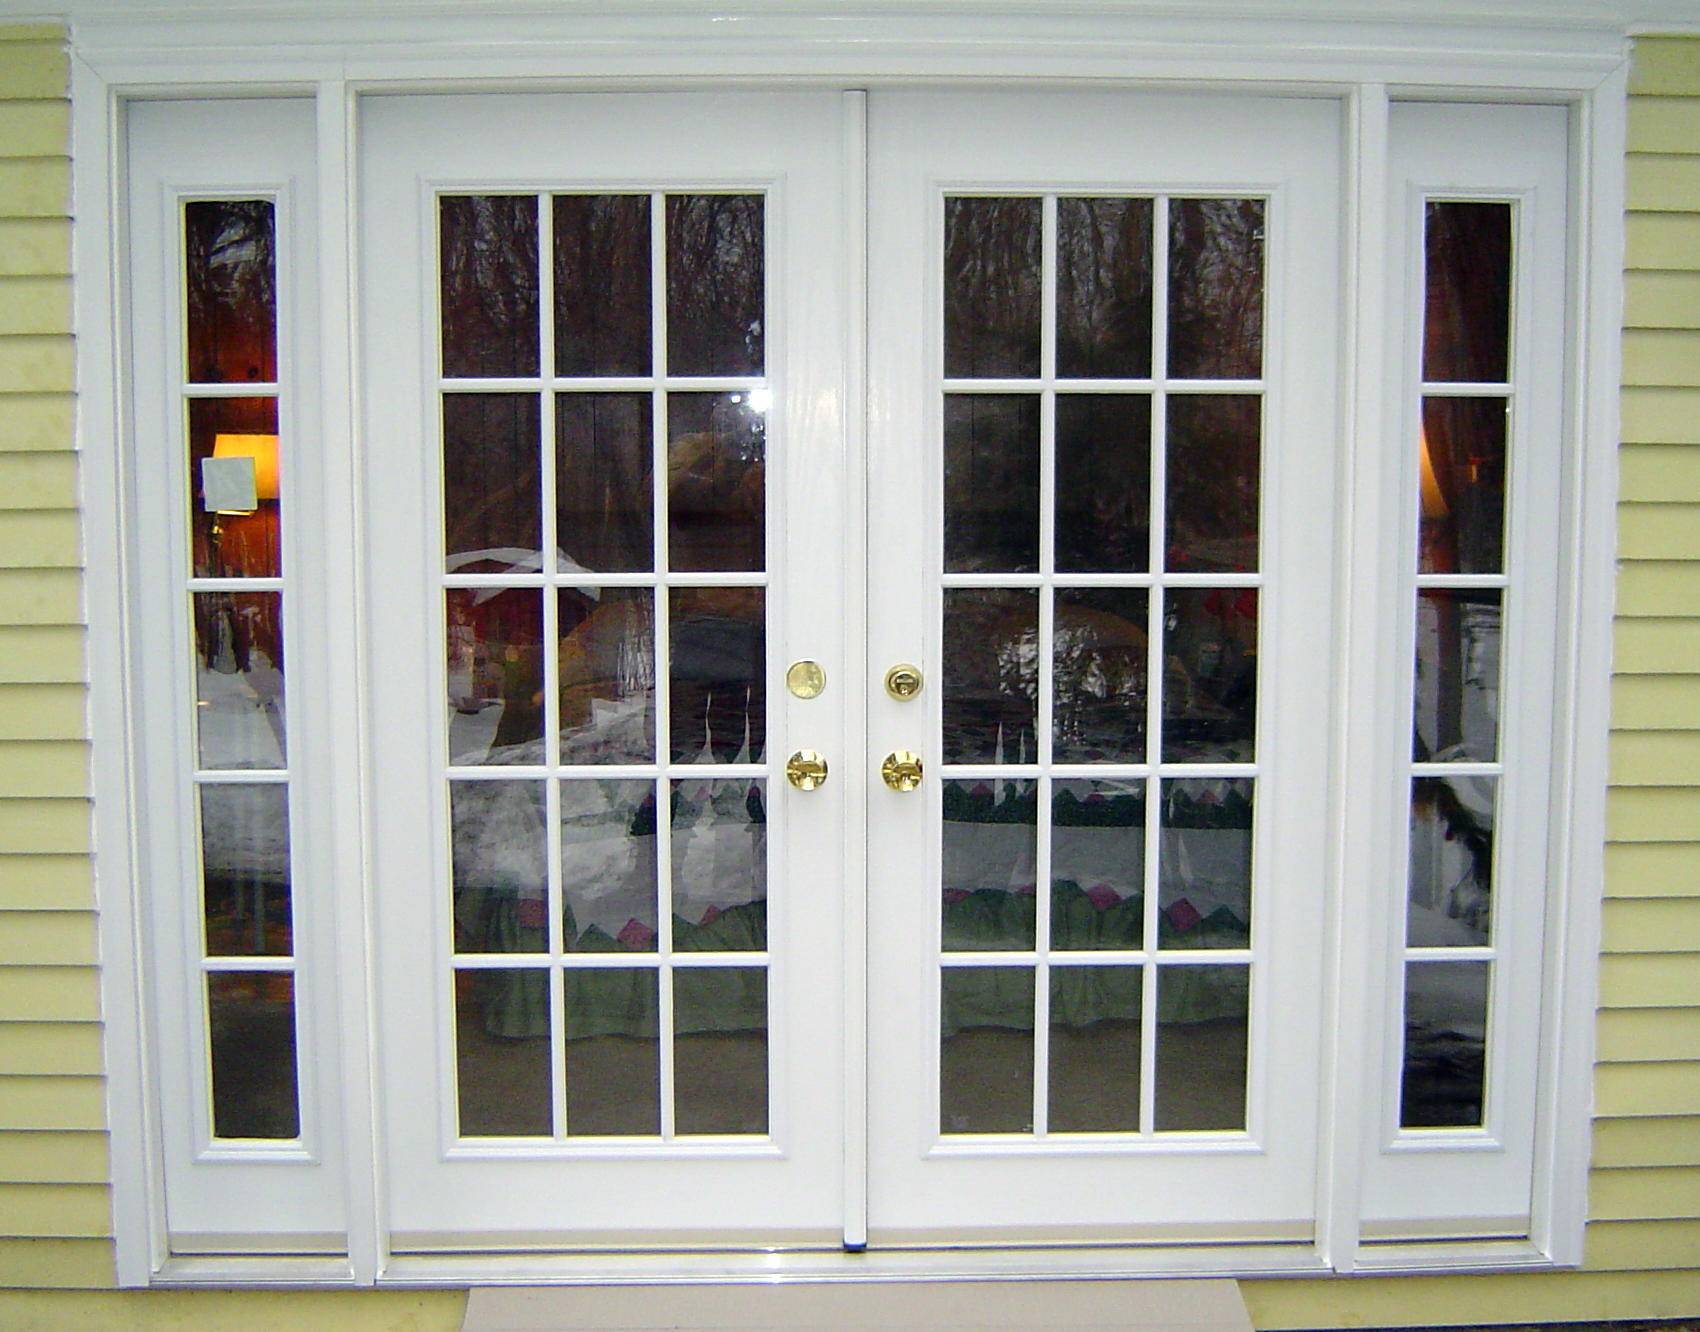 1332 #643C2D FIBERGLASS ENTRY DOORS AND FRENCH DOORS wallpaper Fiberglass Exterior Doors With Glass 39751700